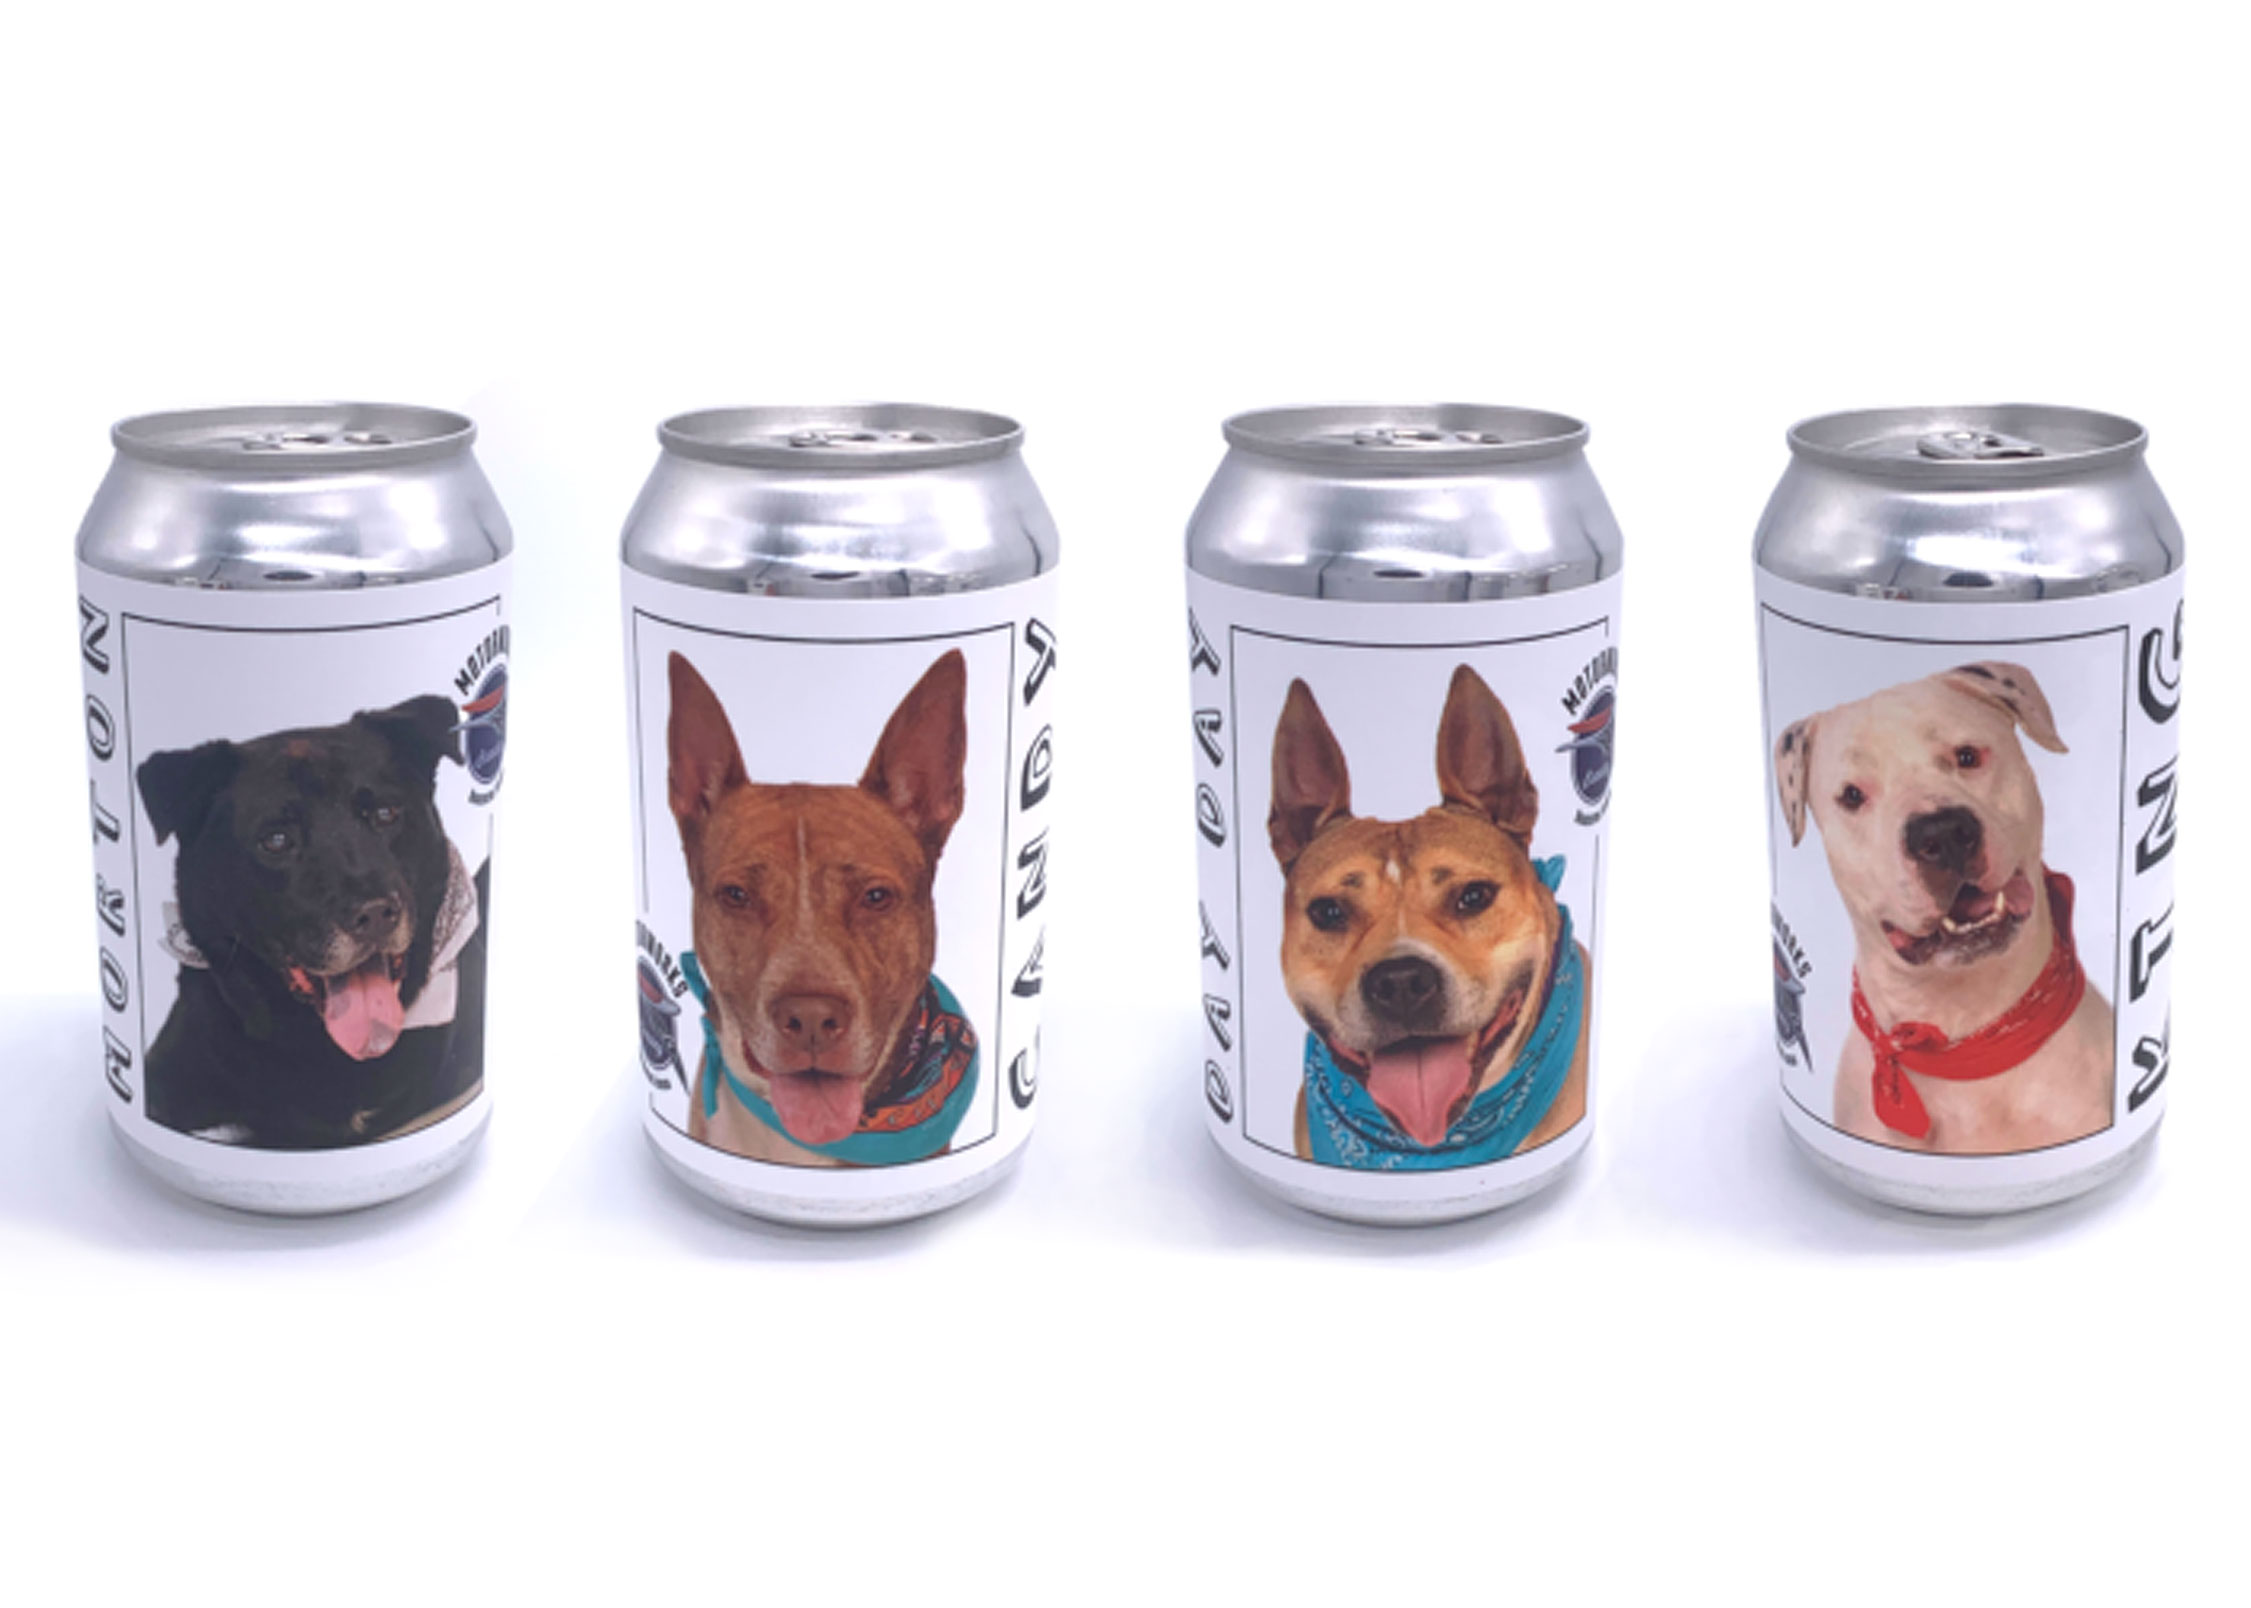 This Brewery Is Featuring Adoptable Dogs on Its Beer Cans